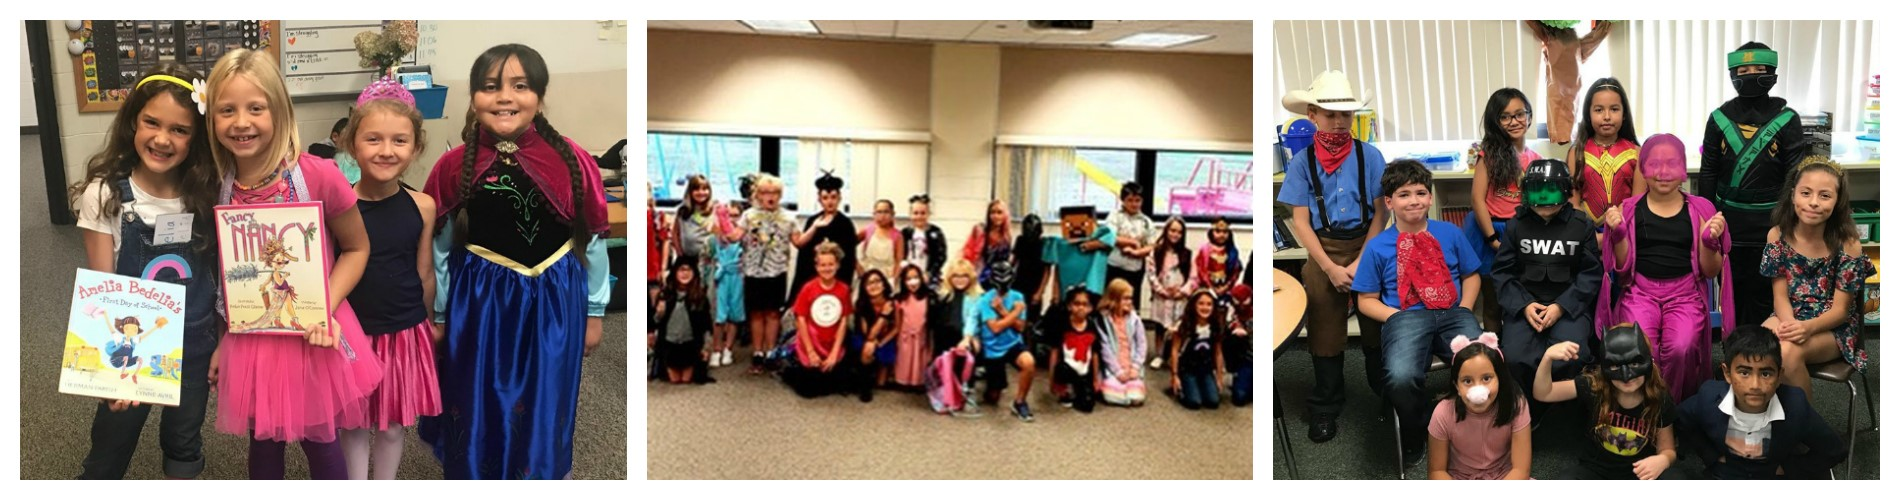 WNE - Students and staff dress like characters.